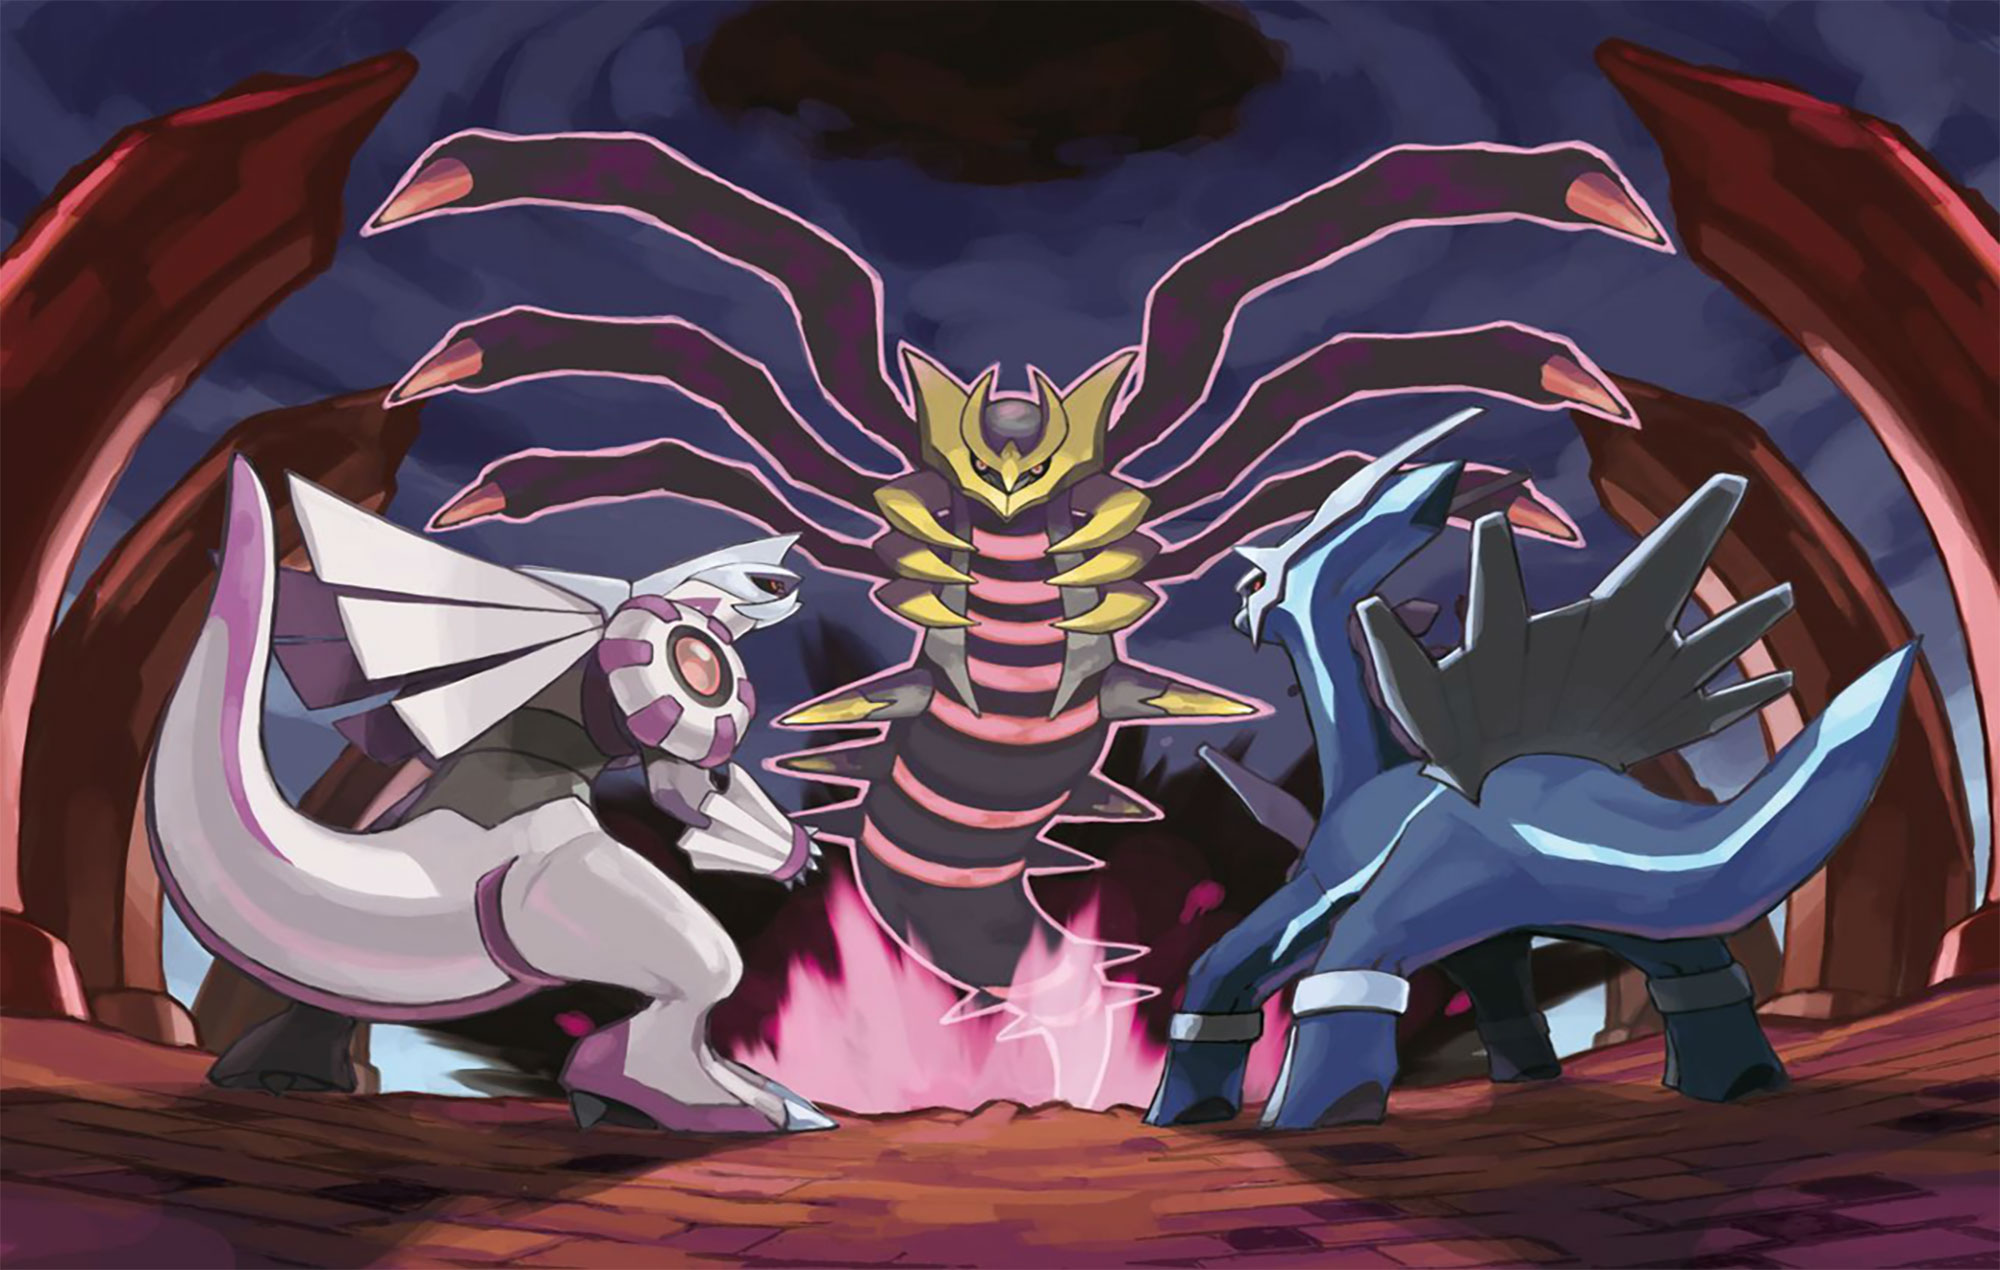 'Pokémon Diamond and Pearl' remakes might be coming next year - NME